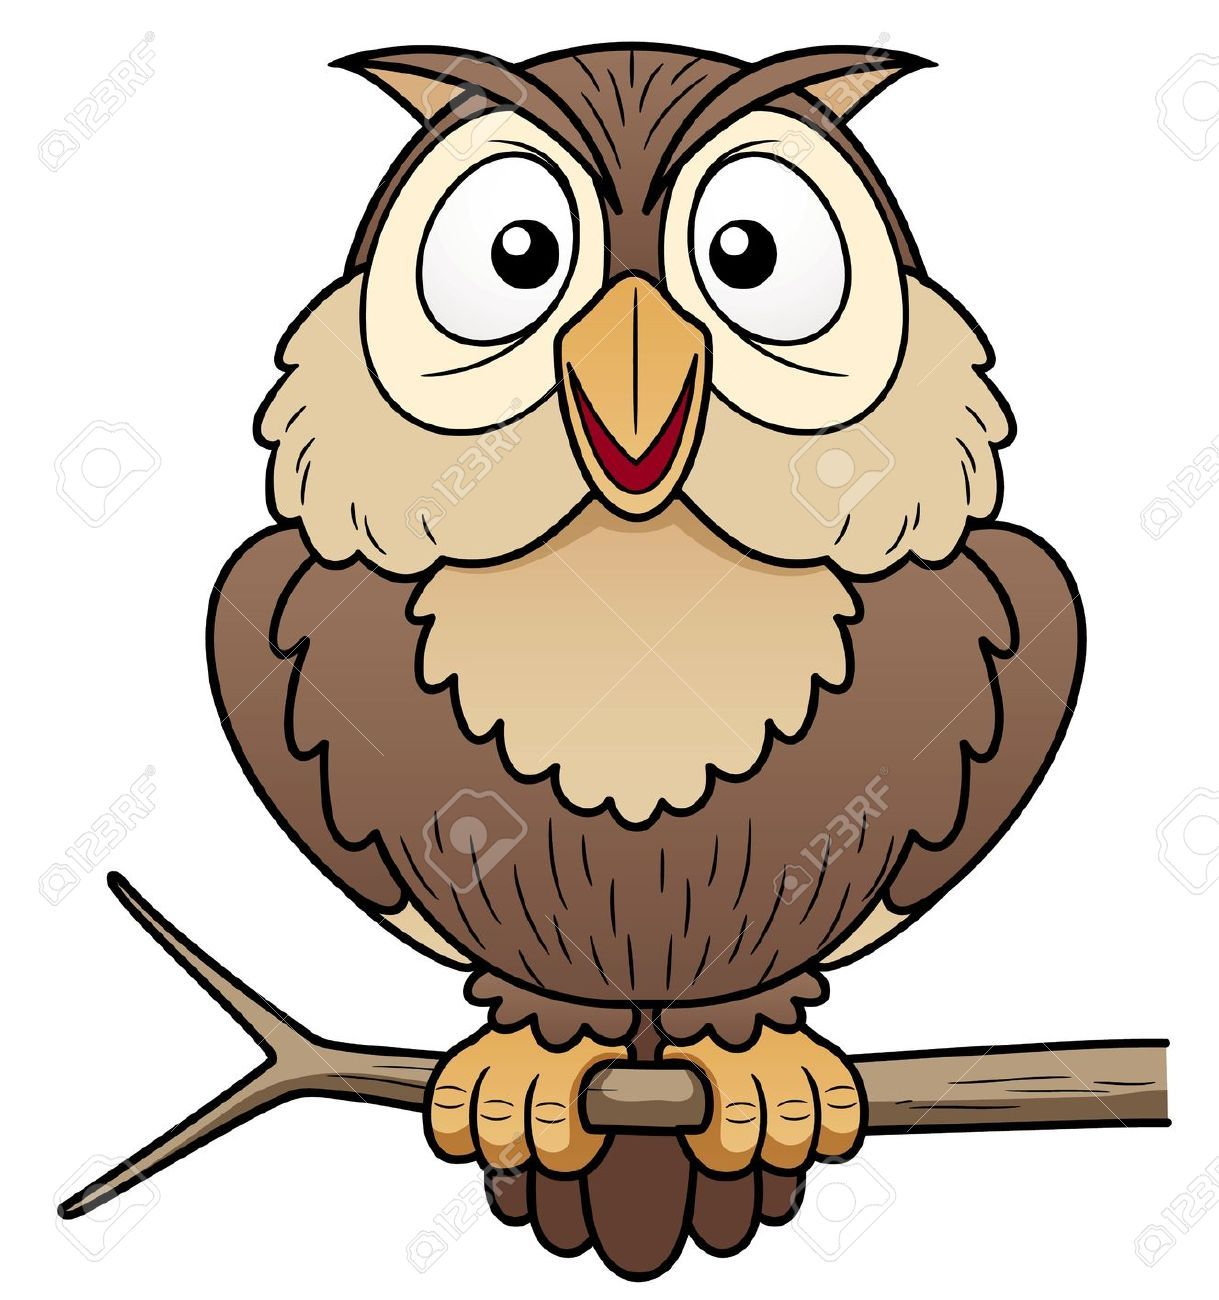 17813680 illustration of cartoon owl sitting on tree for A cartoon owl